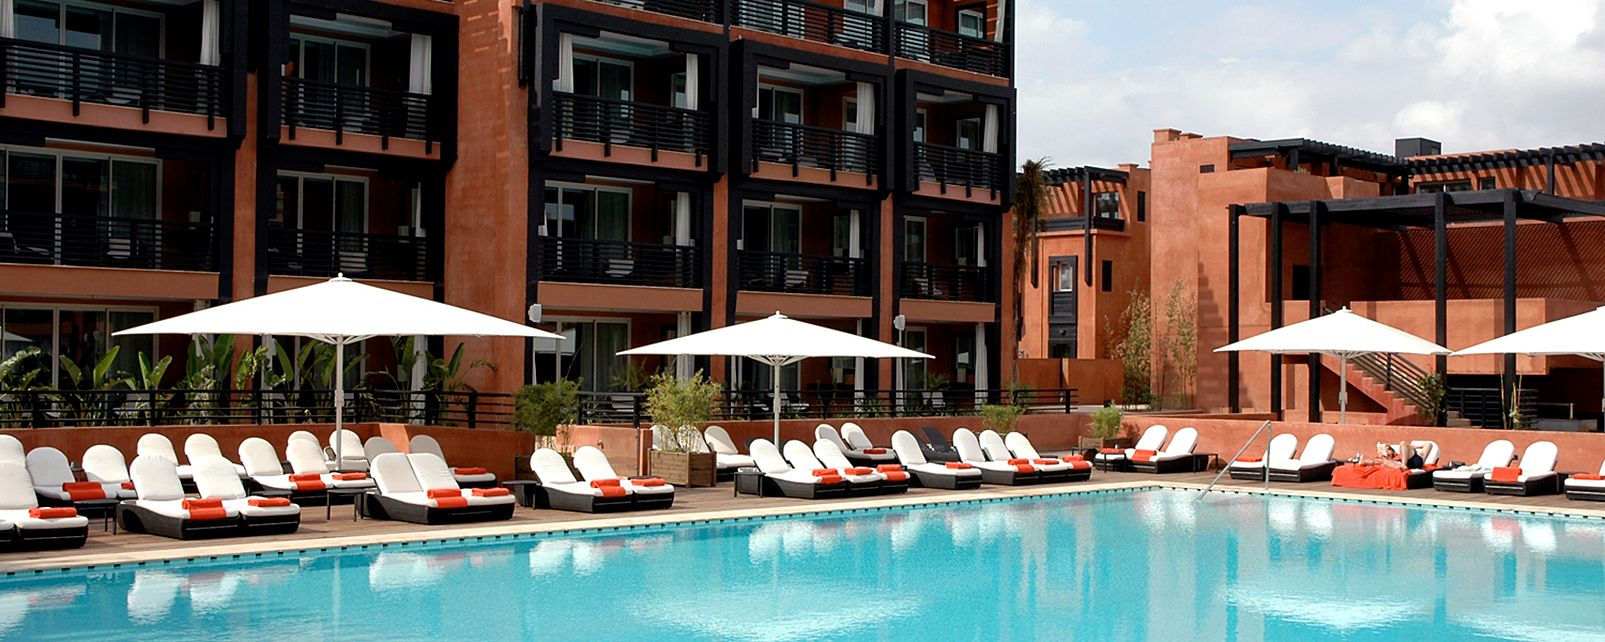 Hotel Le Naoura Barriere